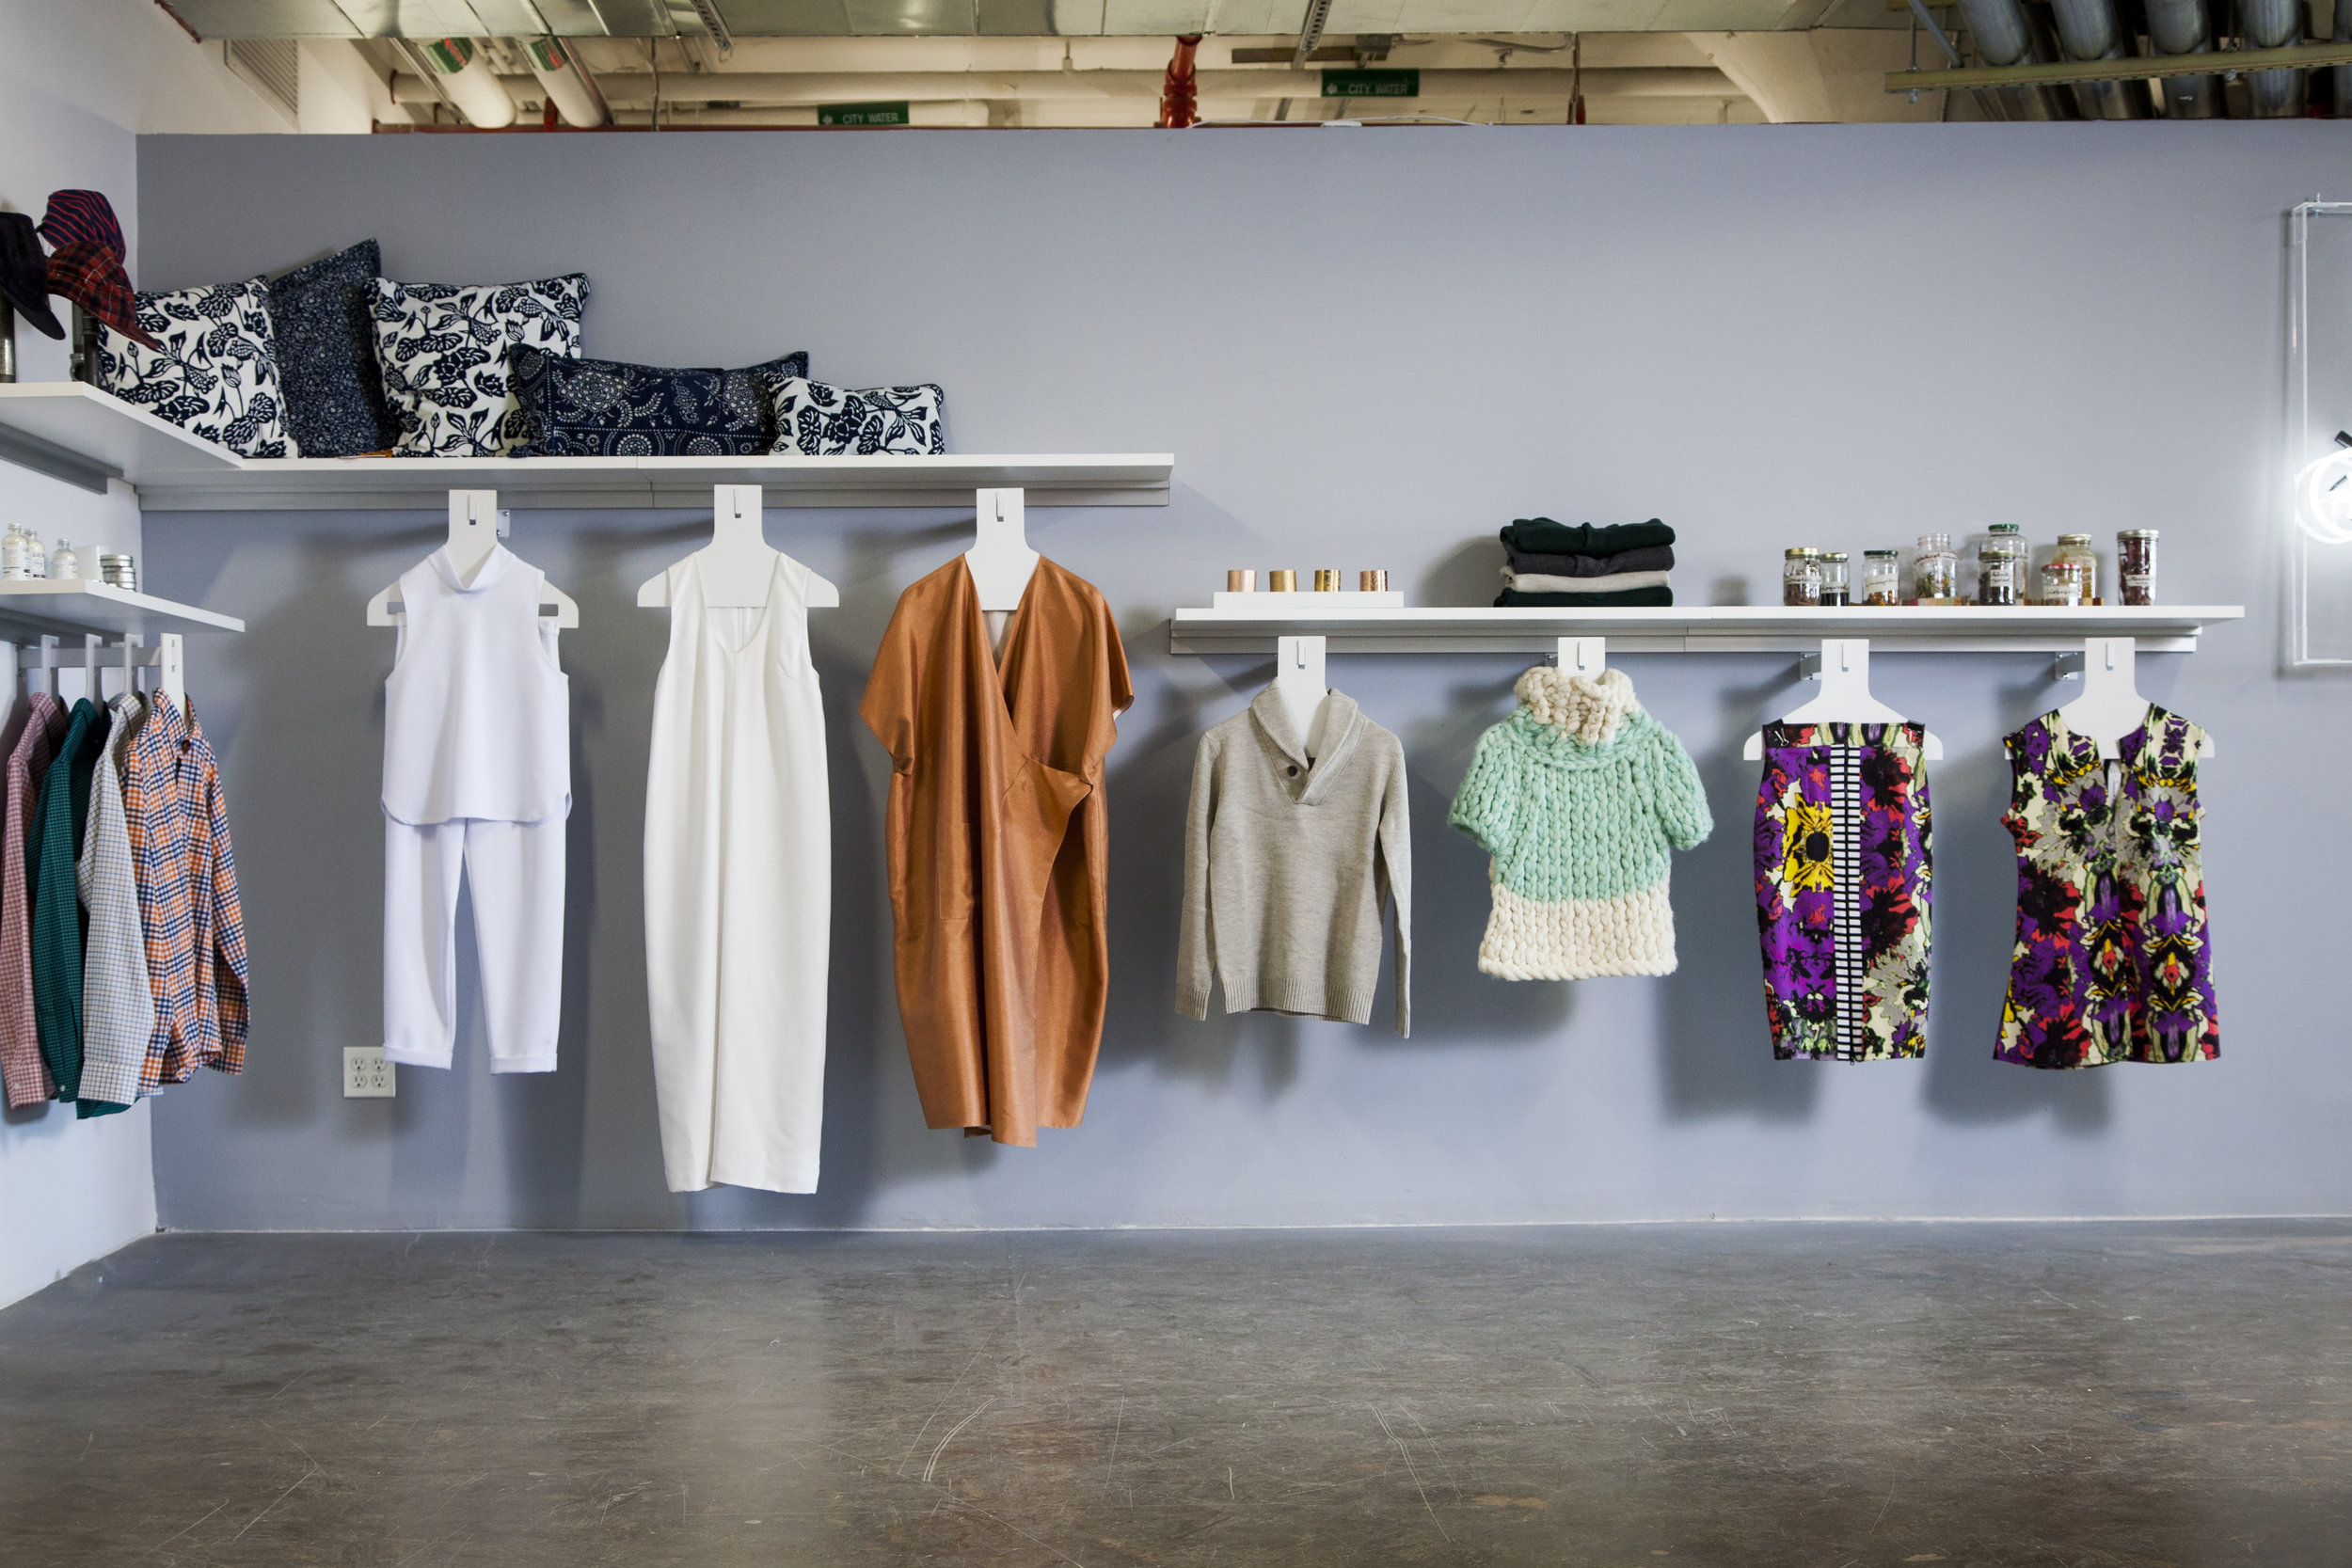 Brooklyn Fashion + Design Accelerator features work by its fellows